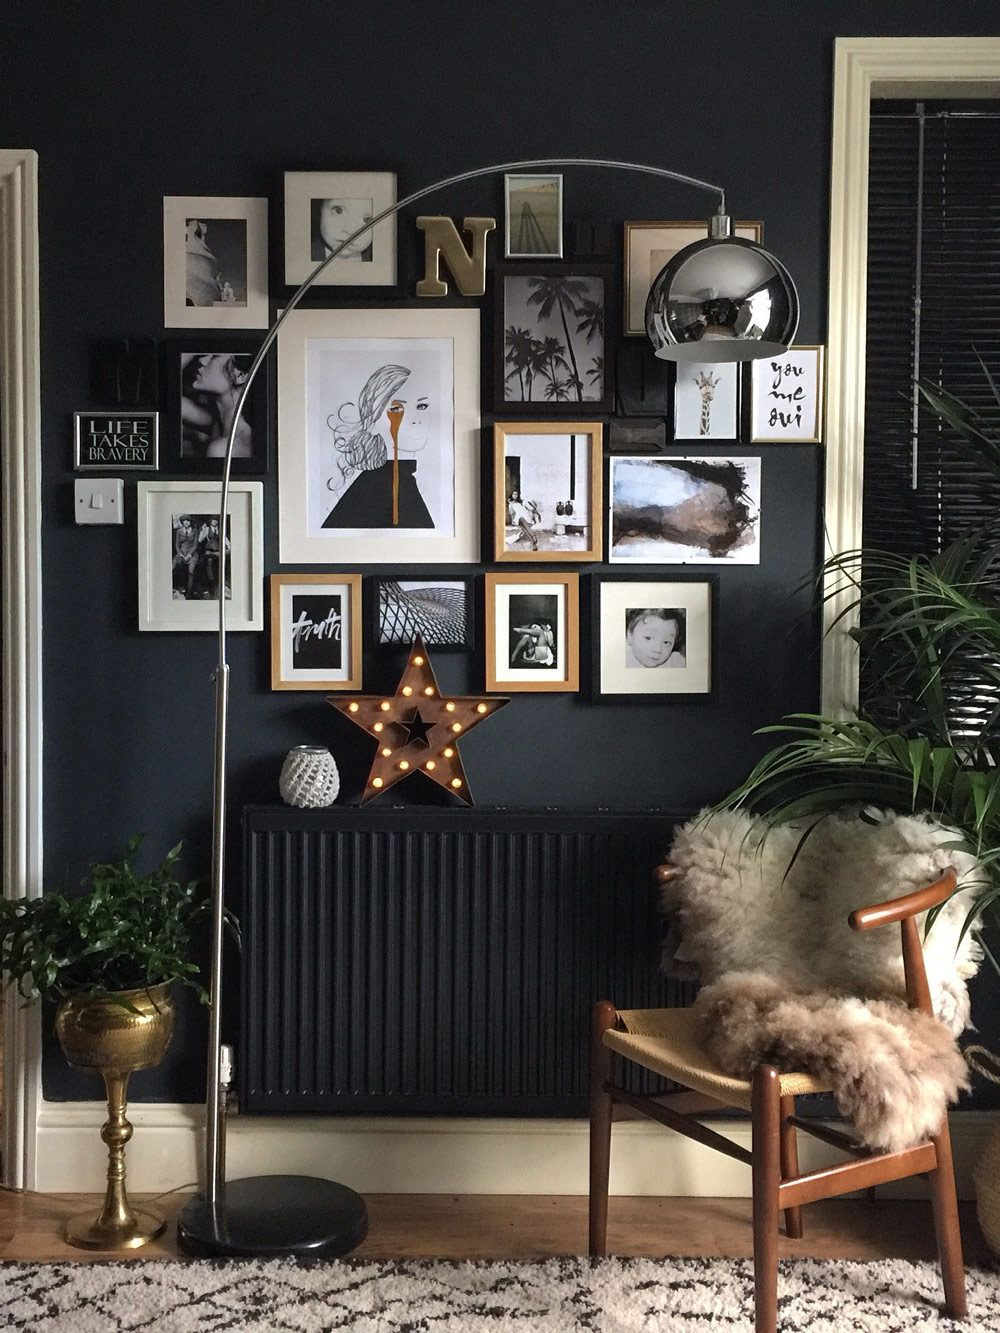 especially love the dark walls with historic details as the especially love the dark walls with historic details as the backdrop of their art filled home nadia and mark singleton live in a dwelling in